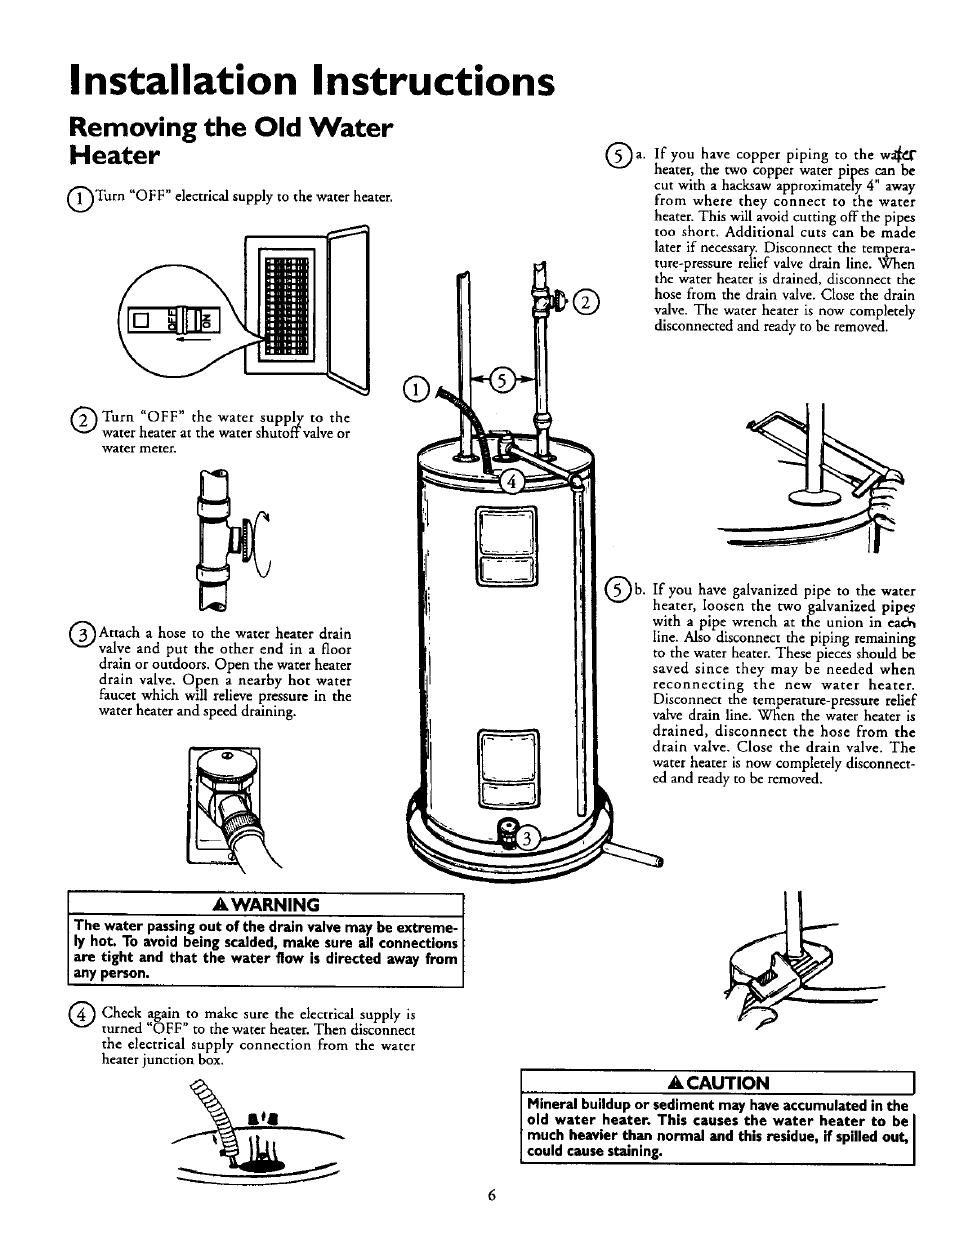 Removing the old water heater, A warning, A caution | Installation  instructions | Kenmore